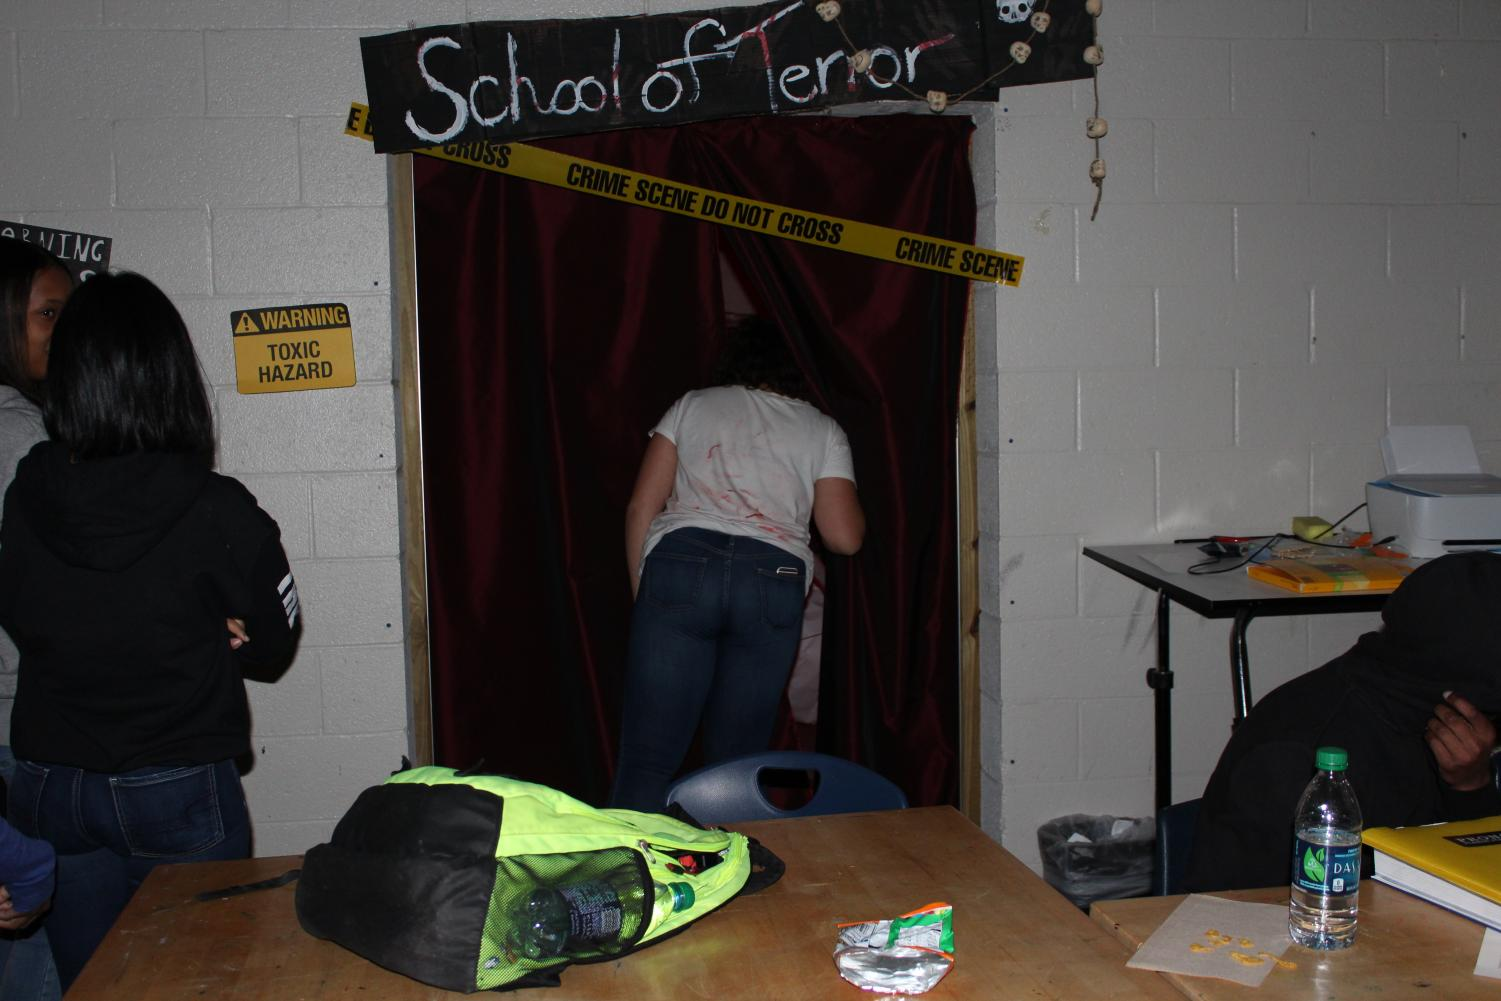 """NC students in art club created a haunted house in Mrs. Dowling's Room for Halloween. """"It took us about a good week to do it. Students used it as an extension of their regular activities in the art room; they brought in the necessary supplies and did face painting and all different types of makeup in addition to decorating in there,"""" Mrs. Dowling said. Curious students who congregated outside of the haunted house,  titled """"School of Terror,"""" were advised to keep their eyes open and go all the way through, no matter what."""